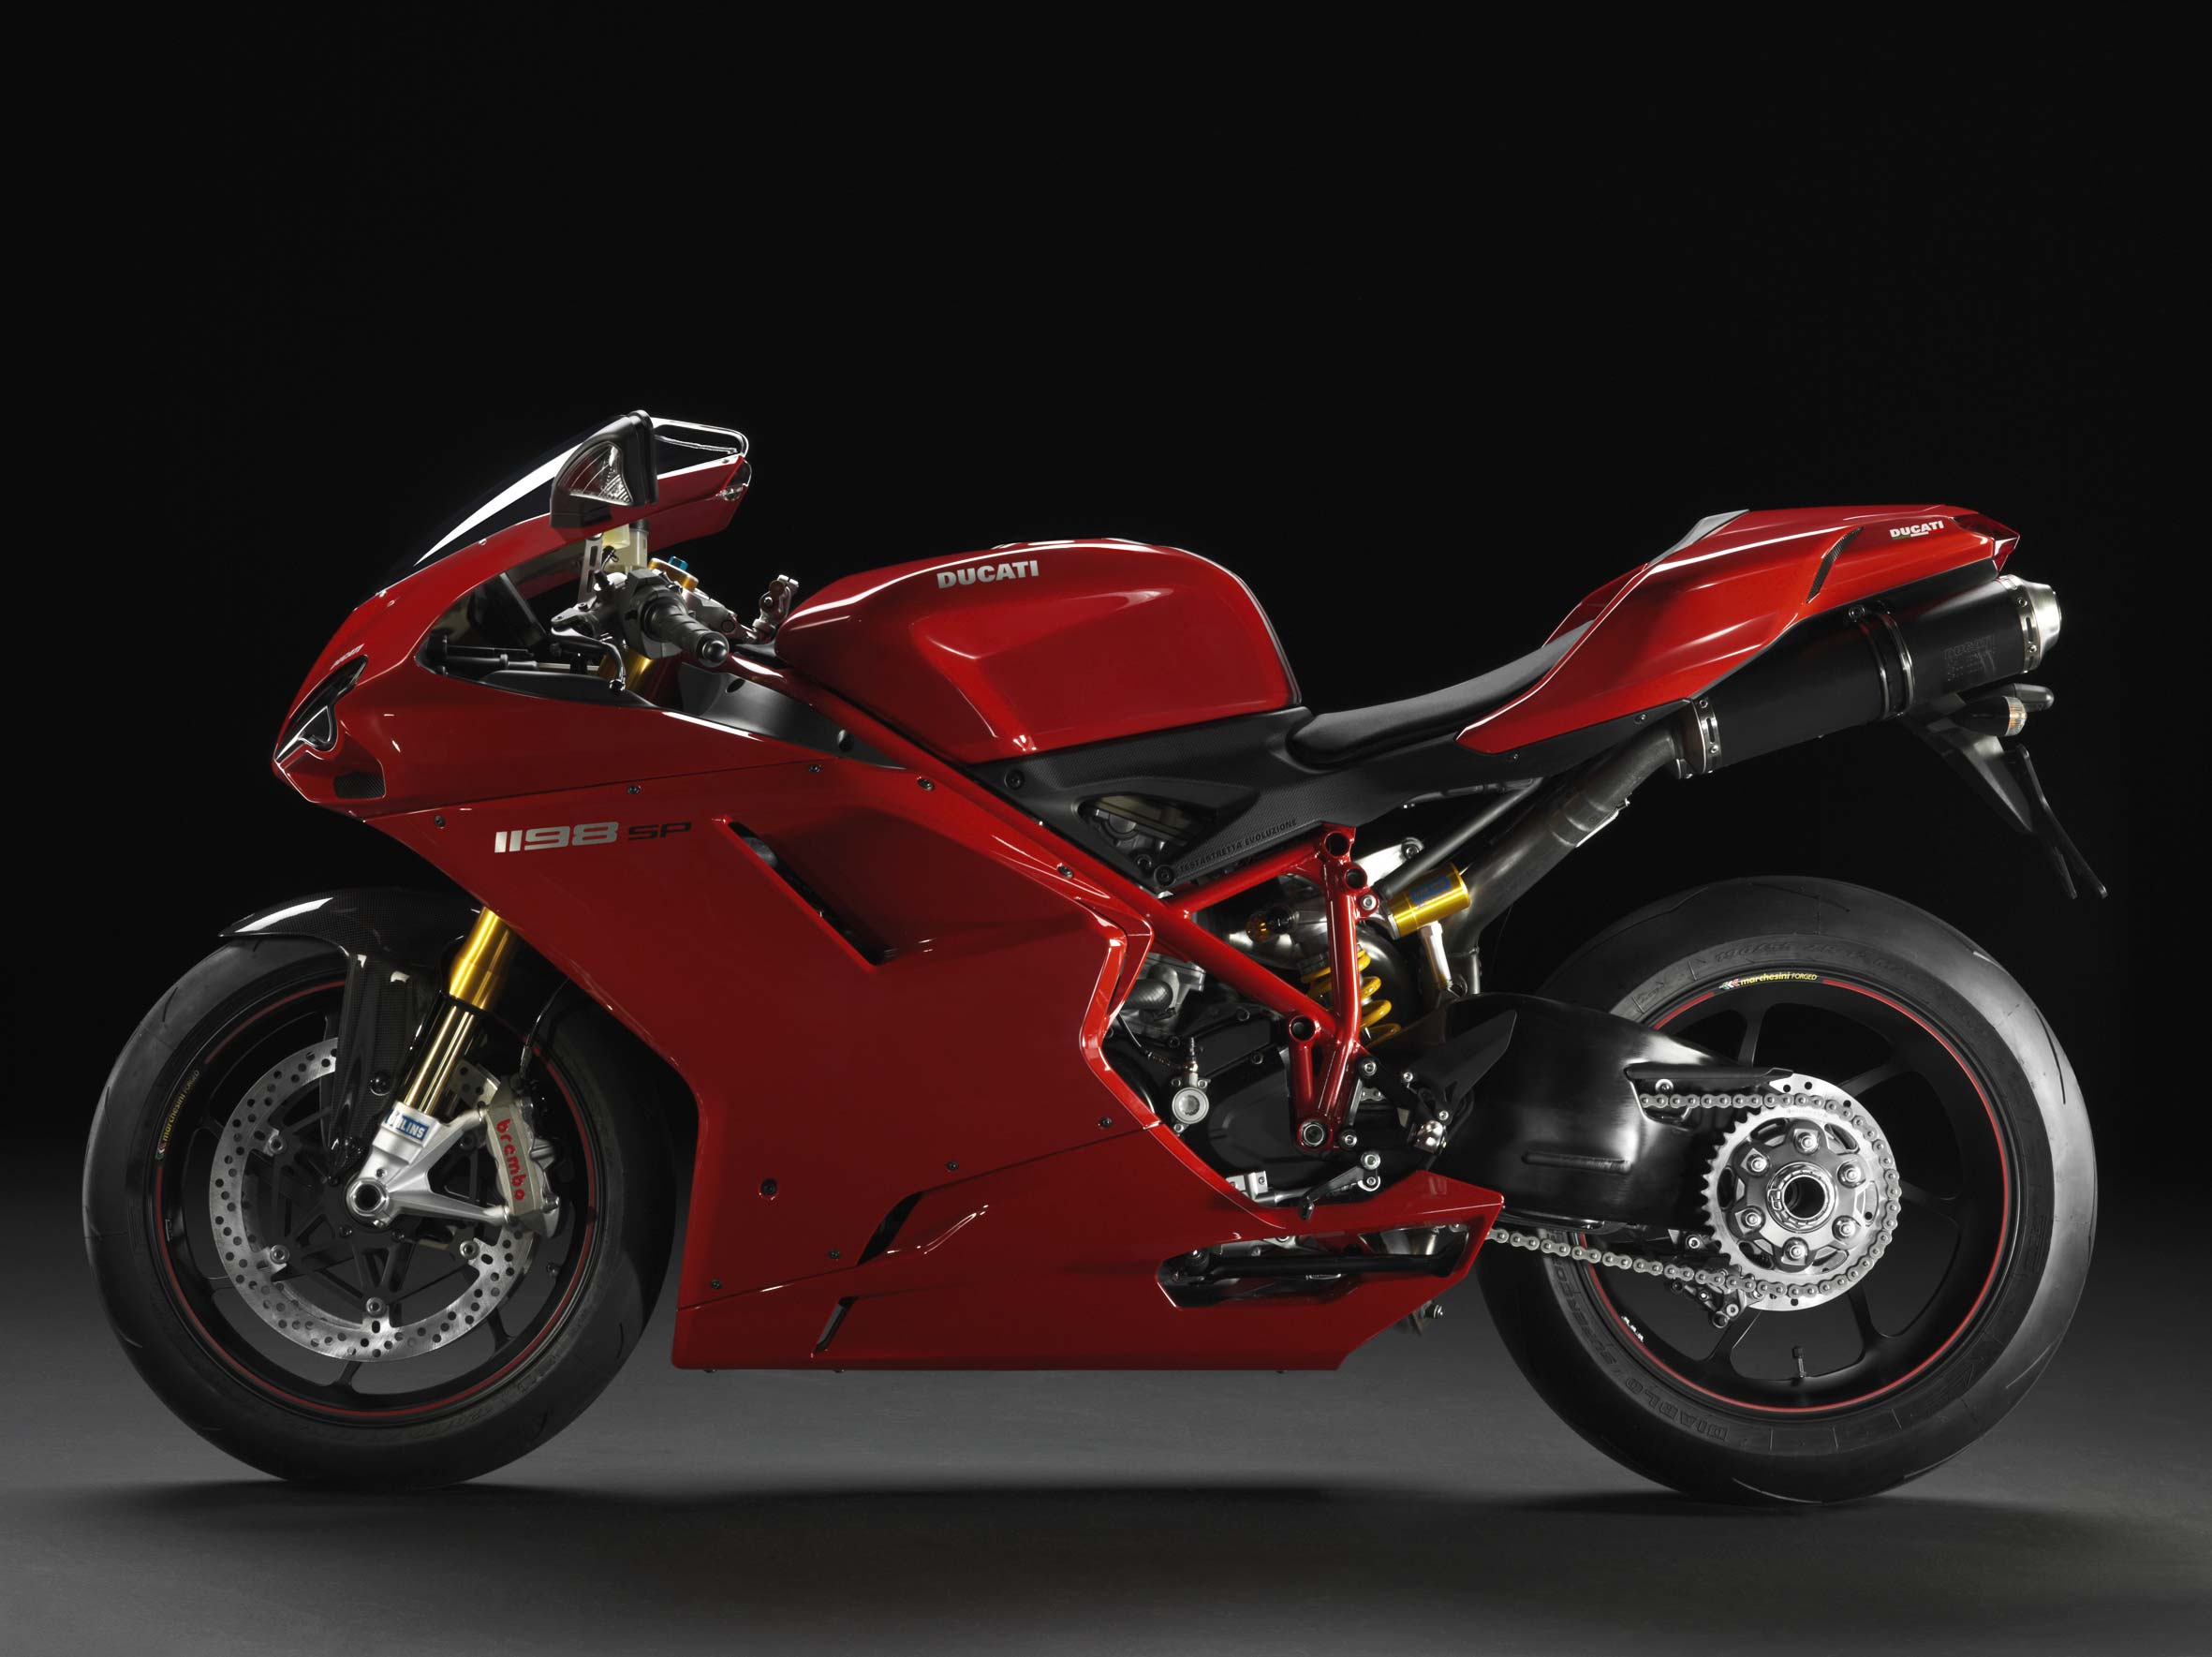 2011 ducati superbike 1198 sp replaces ducati s middle